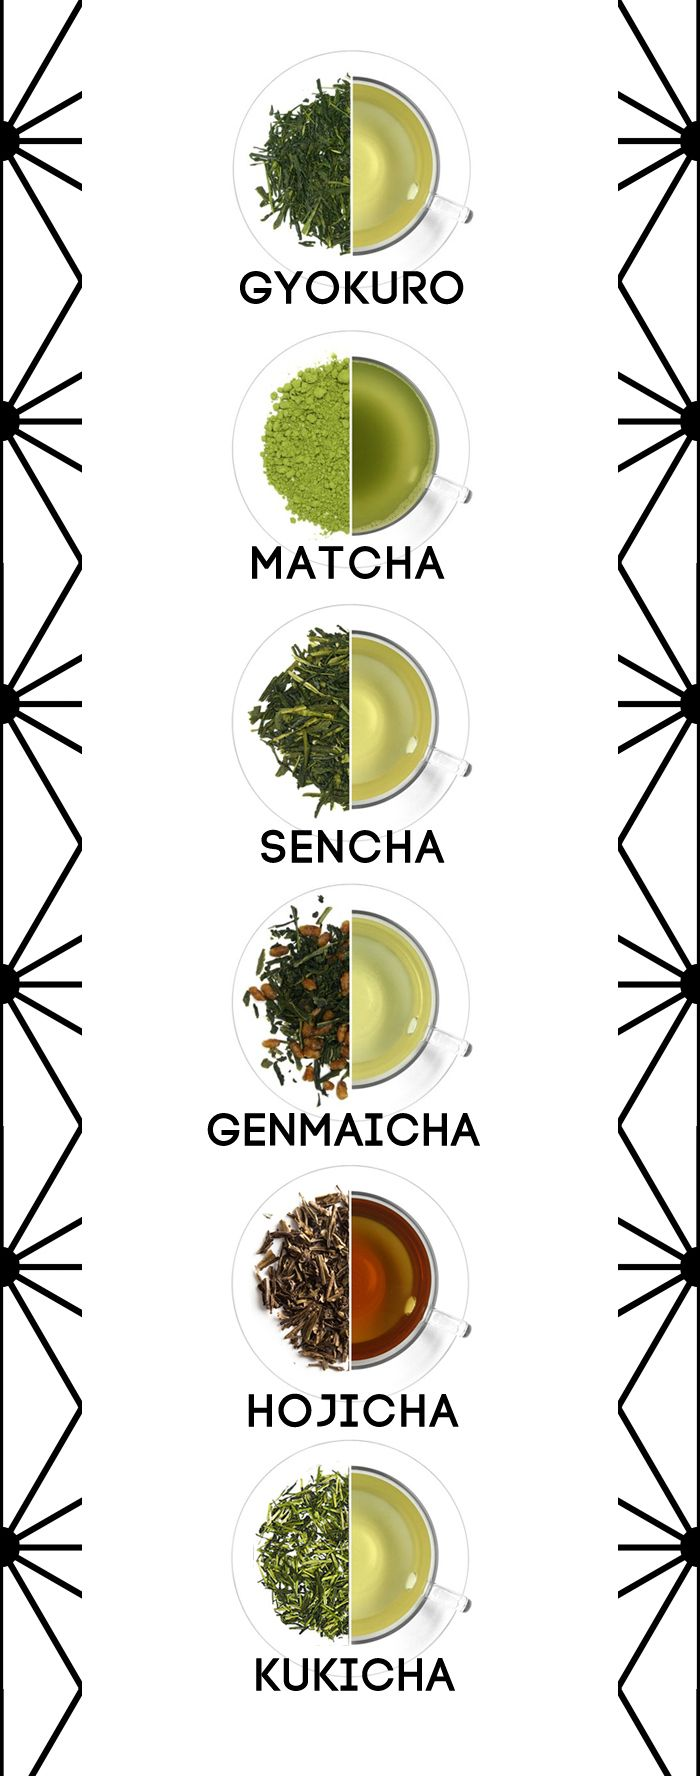 Varieties of green tea. Not only can green tea improve brain function in the short term, it may also protect your brain in old age. Alzheimer's and Parkinson's diseases are common neurodegenerative diseases. Multiple studies show that the catechin compounds in green tea can have protective effects on neurons in test tubes and animal models, potentally lowering the risk of Alzheimer's and Parkinson's.